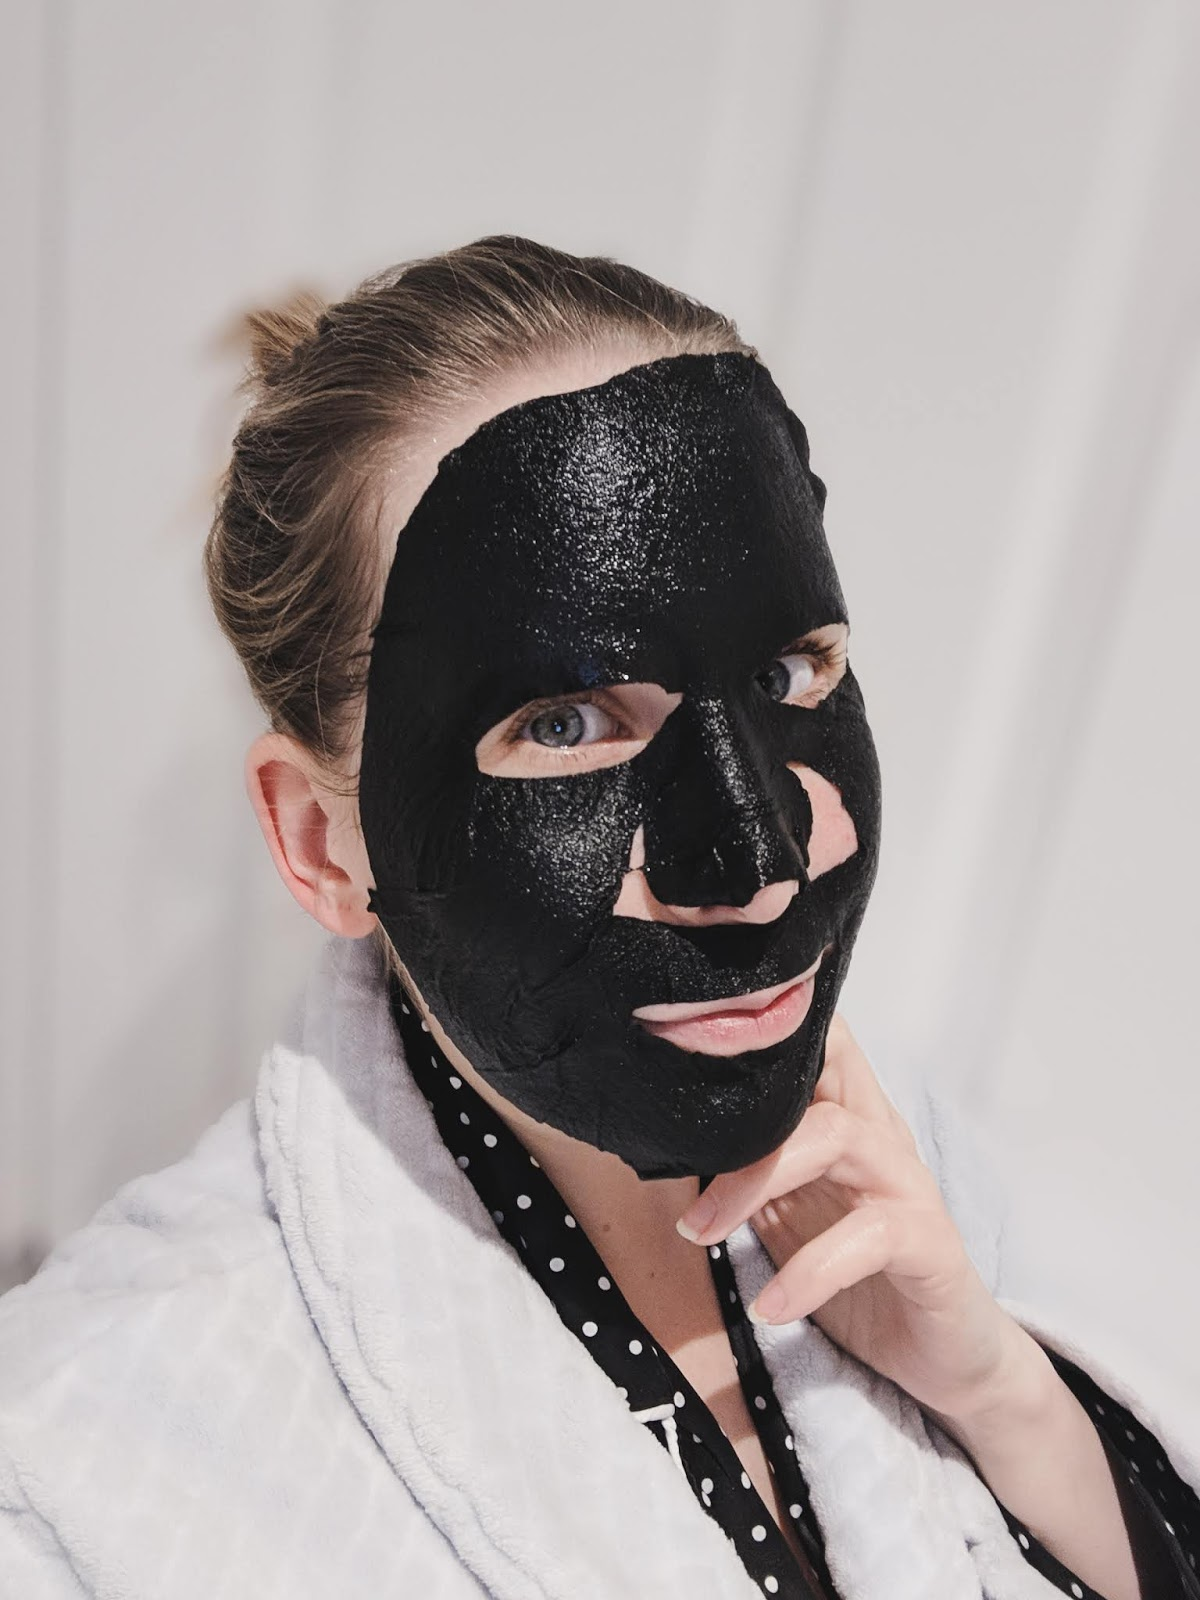 Procoal_marine_moisture_sheet_mask_on_face